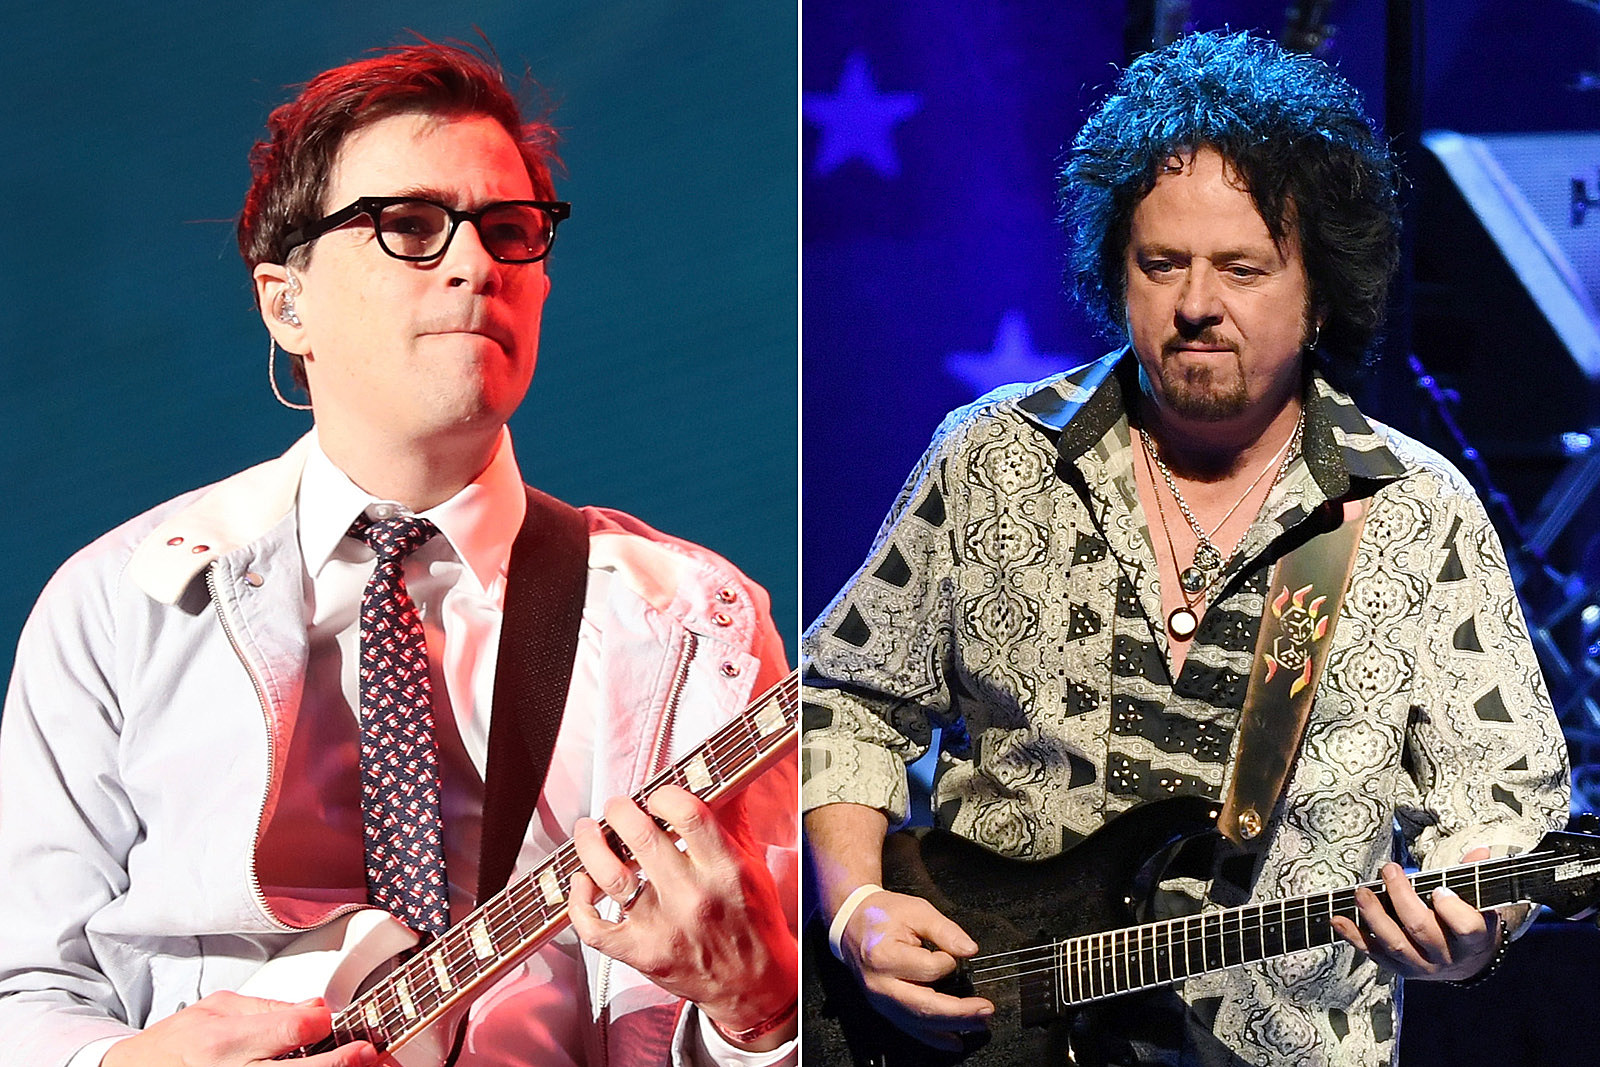 Is Toto Going to Cover Weezer Now?